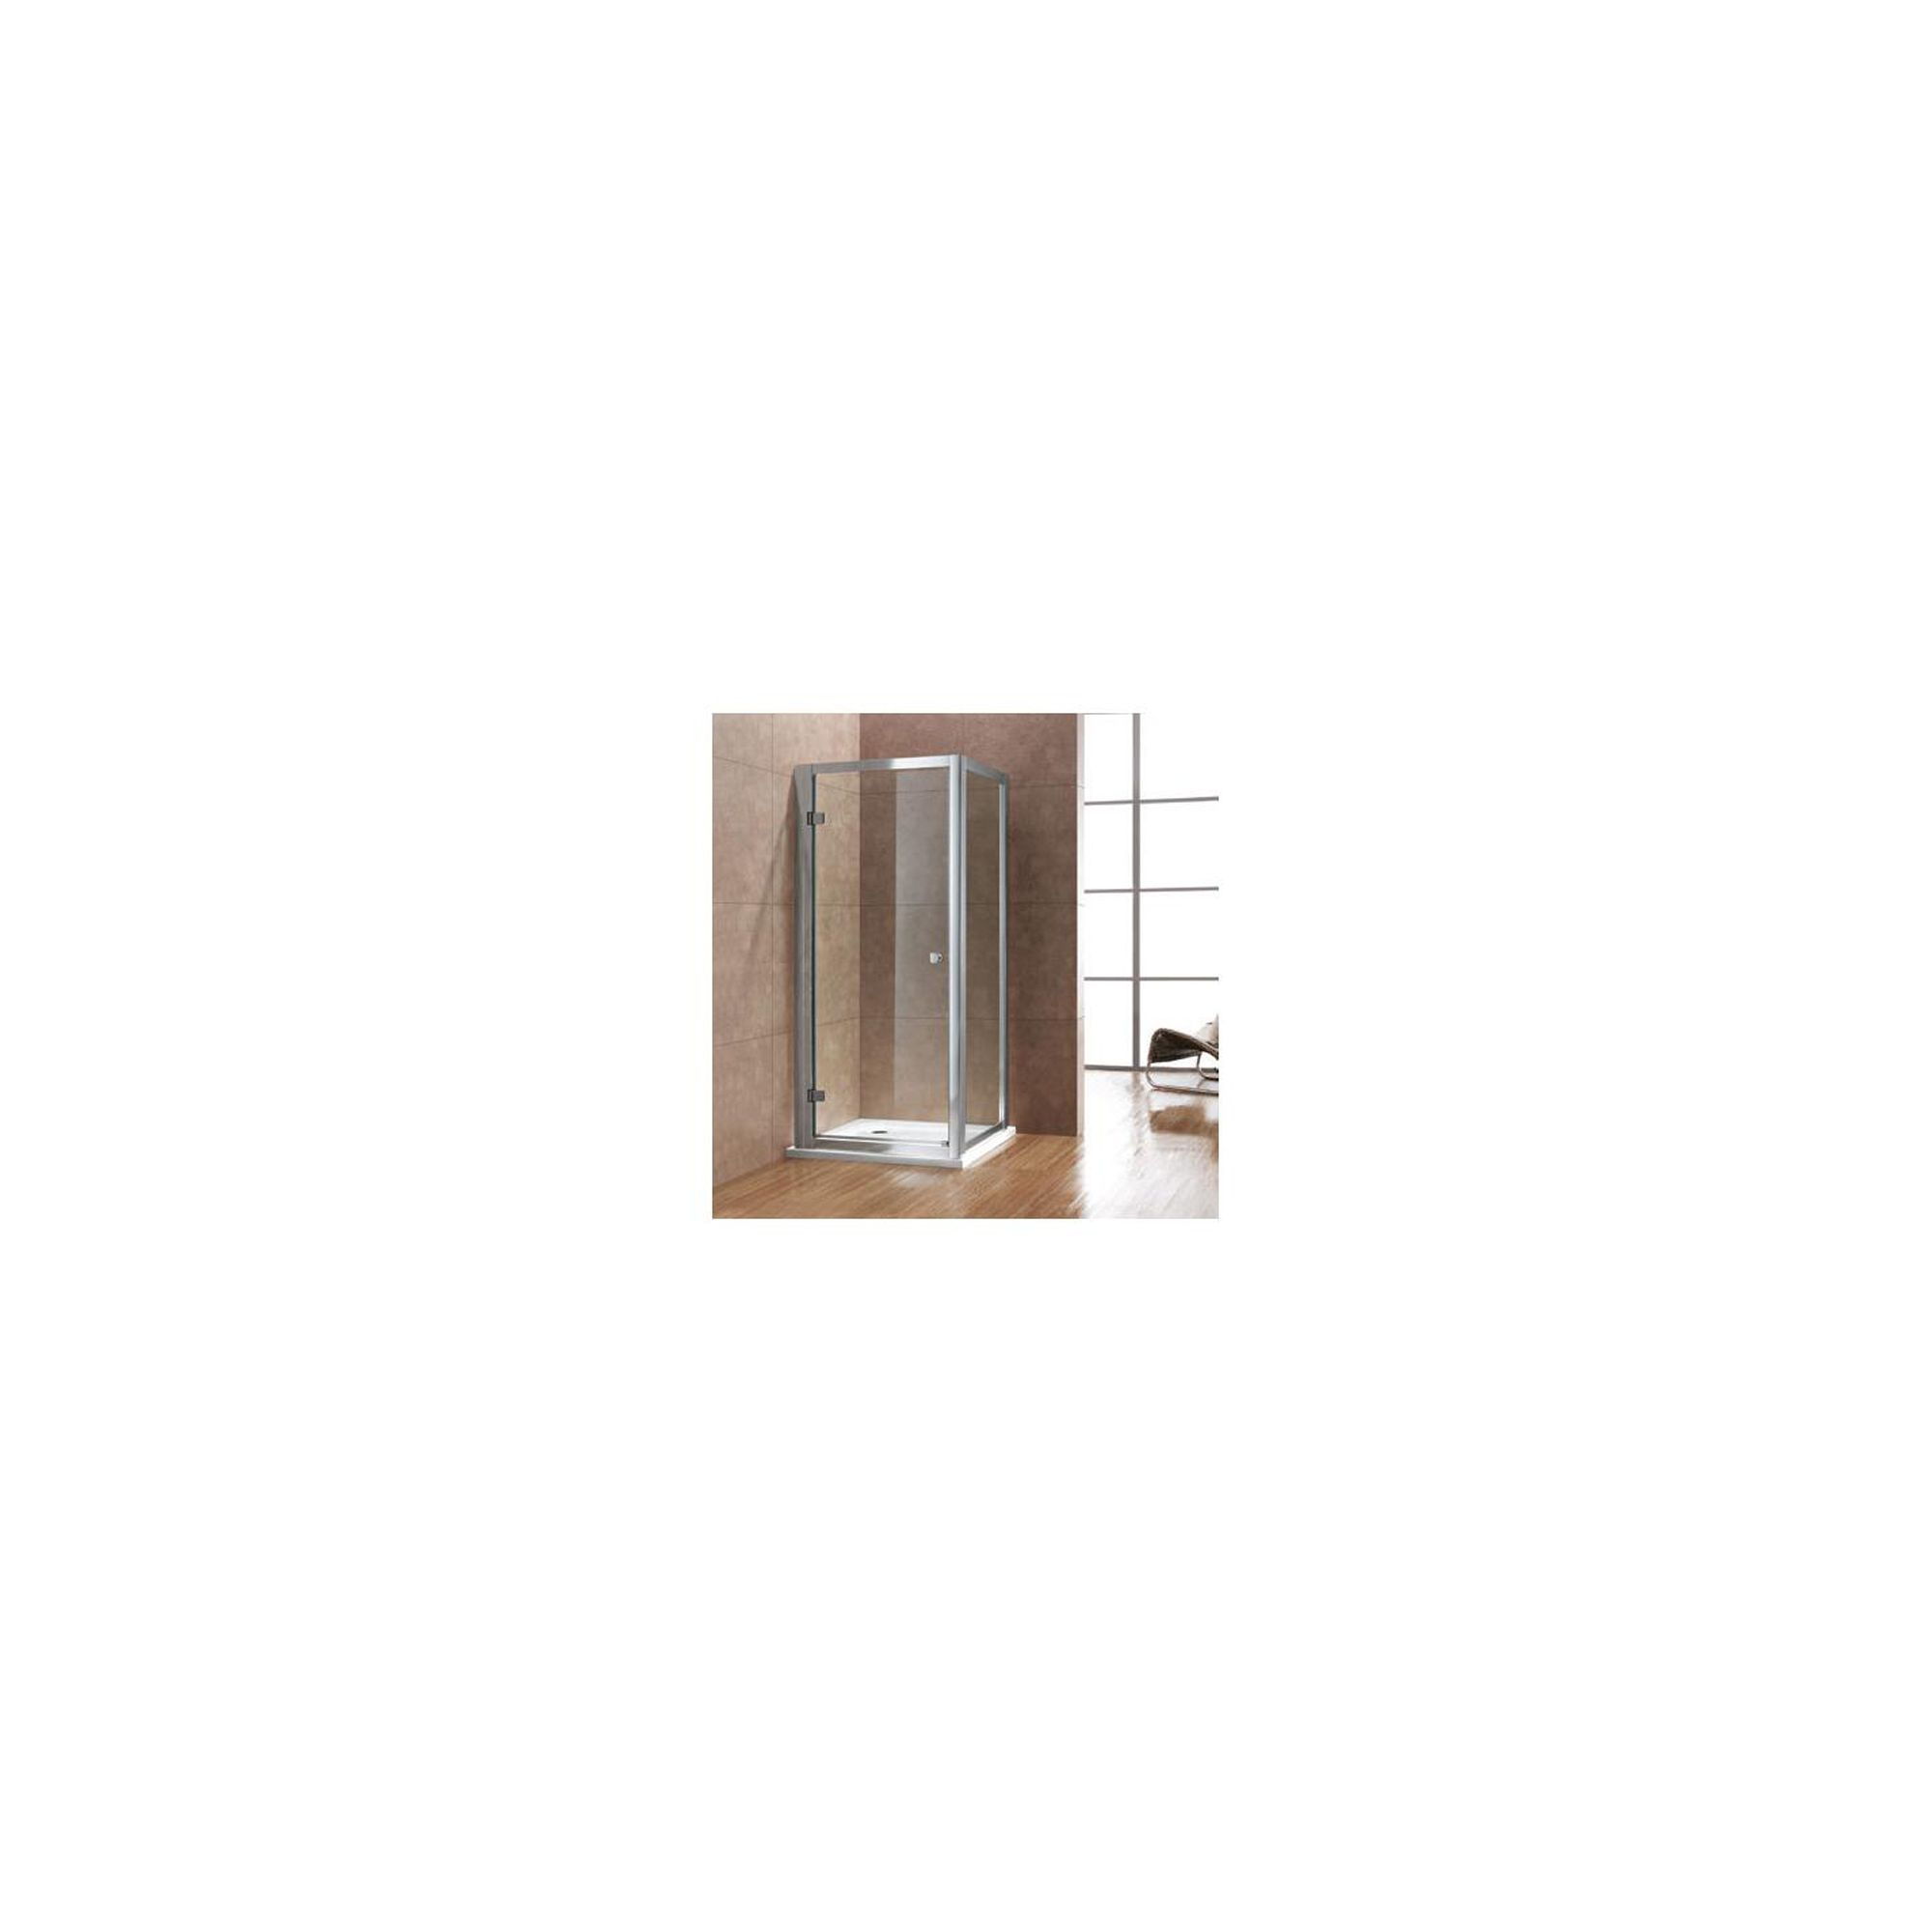 Duchy Premium Hinged Shower Door, 700mm Wide, 8mm Glass at Tesco Direct